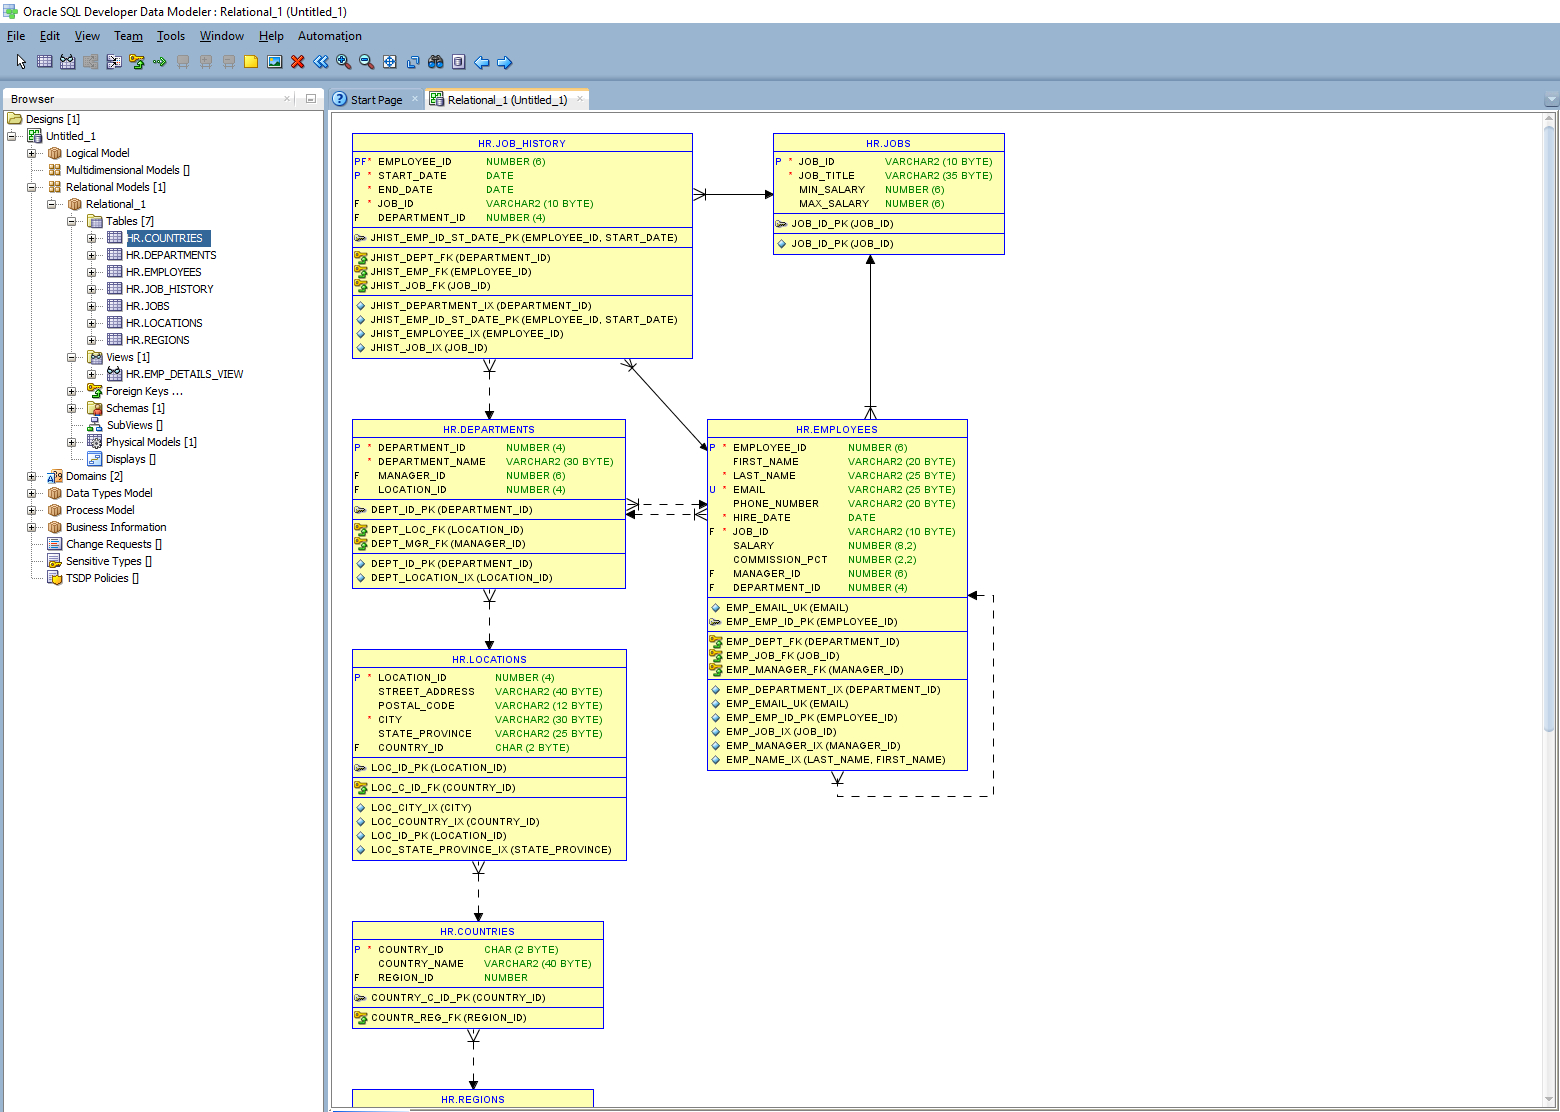 How To Create Er Diagram For Existing Database With Oracle in Er Diagram In Sql Developer 1.5.5